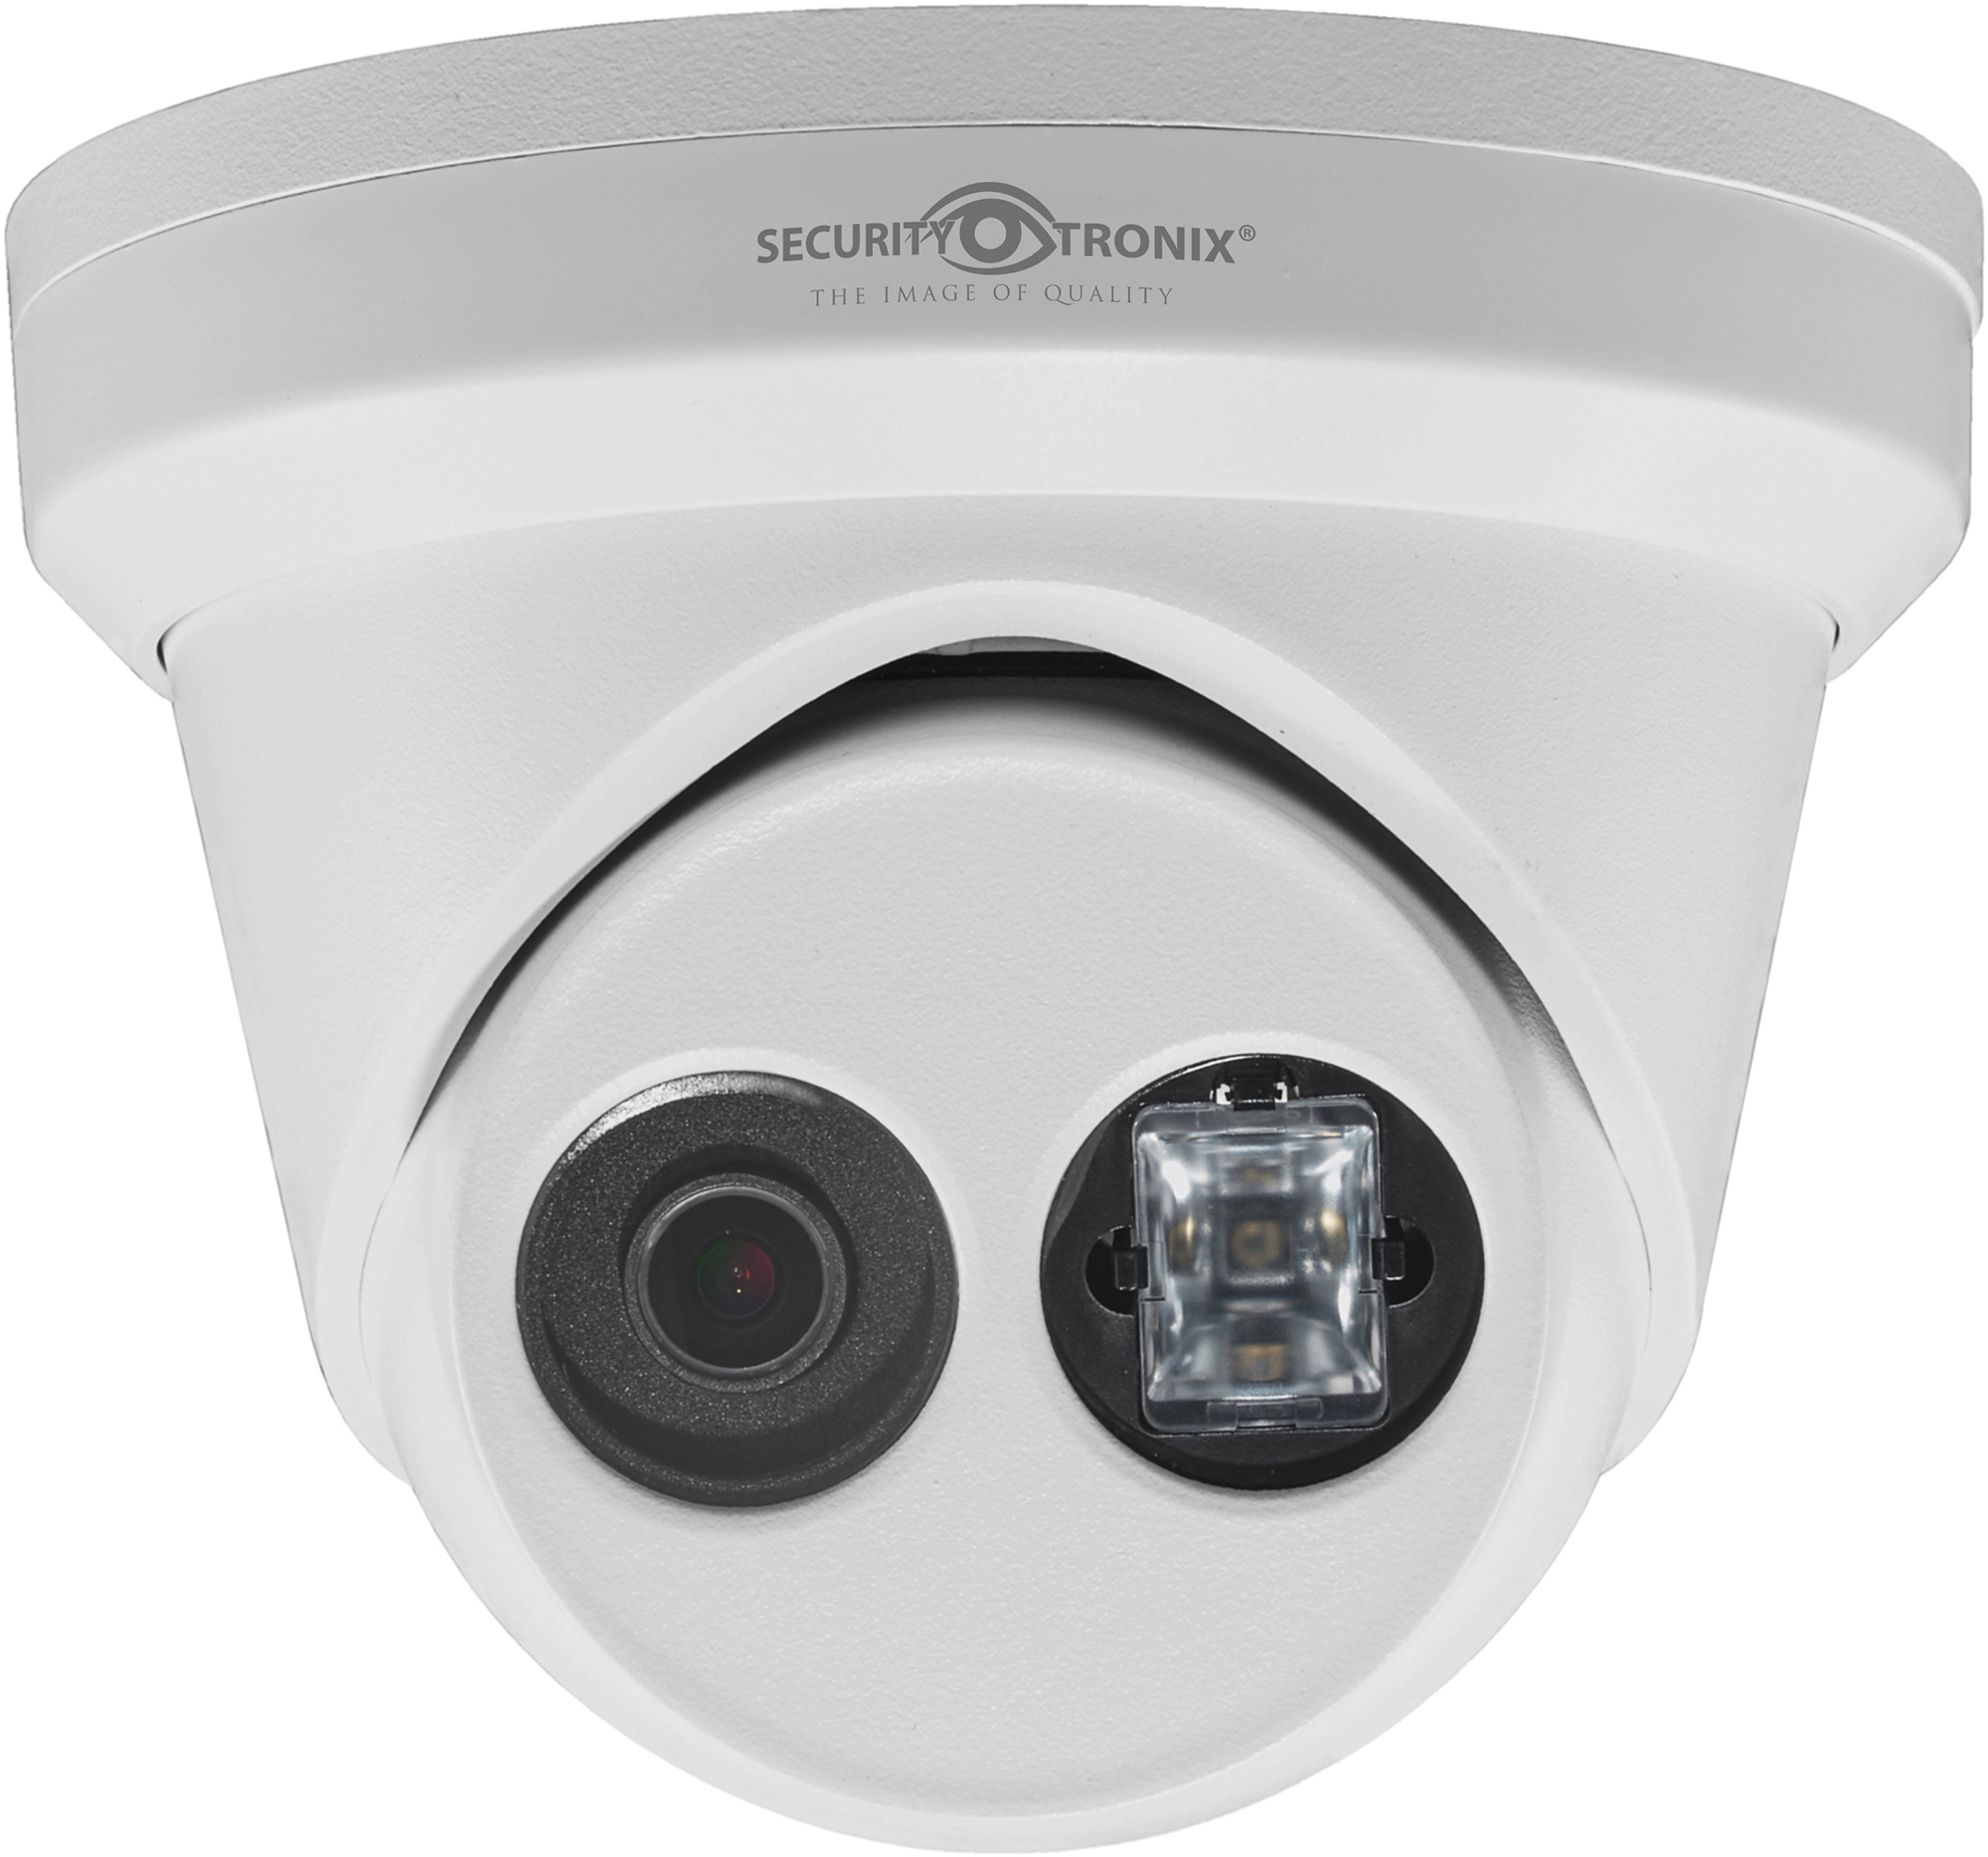 SecurityTronix ST-IP4FTD 4MP IP Fixed Lens Turret Dome Camera - White SCT-ST-IP4FTD